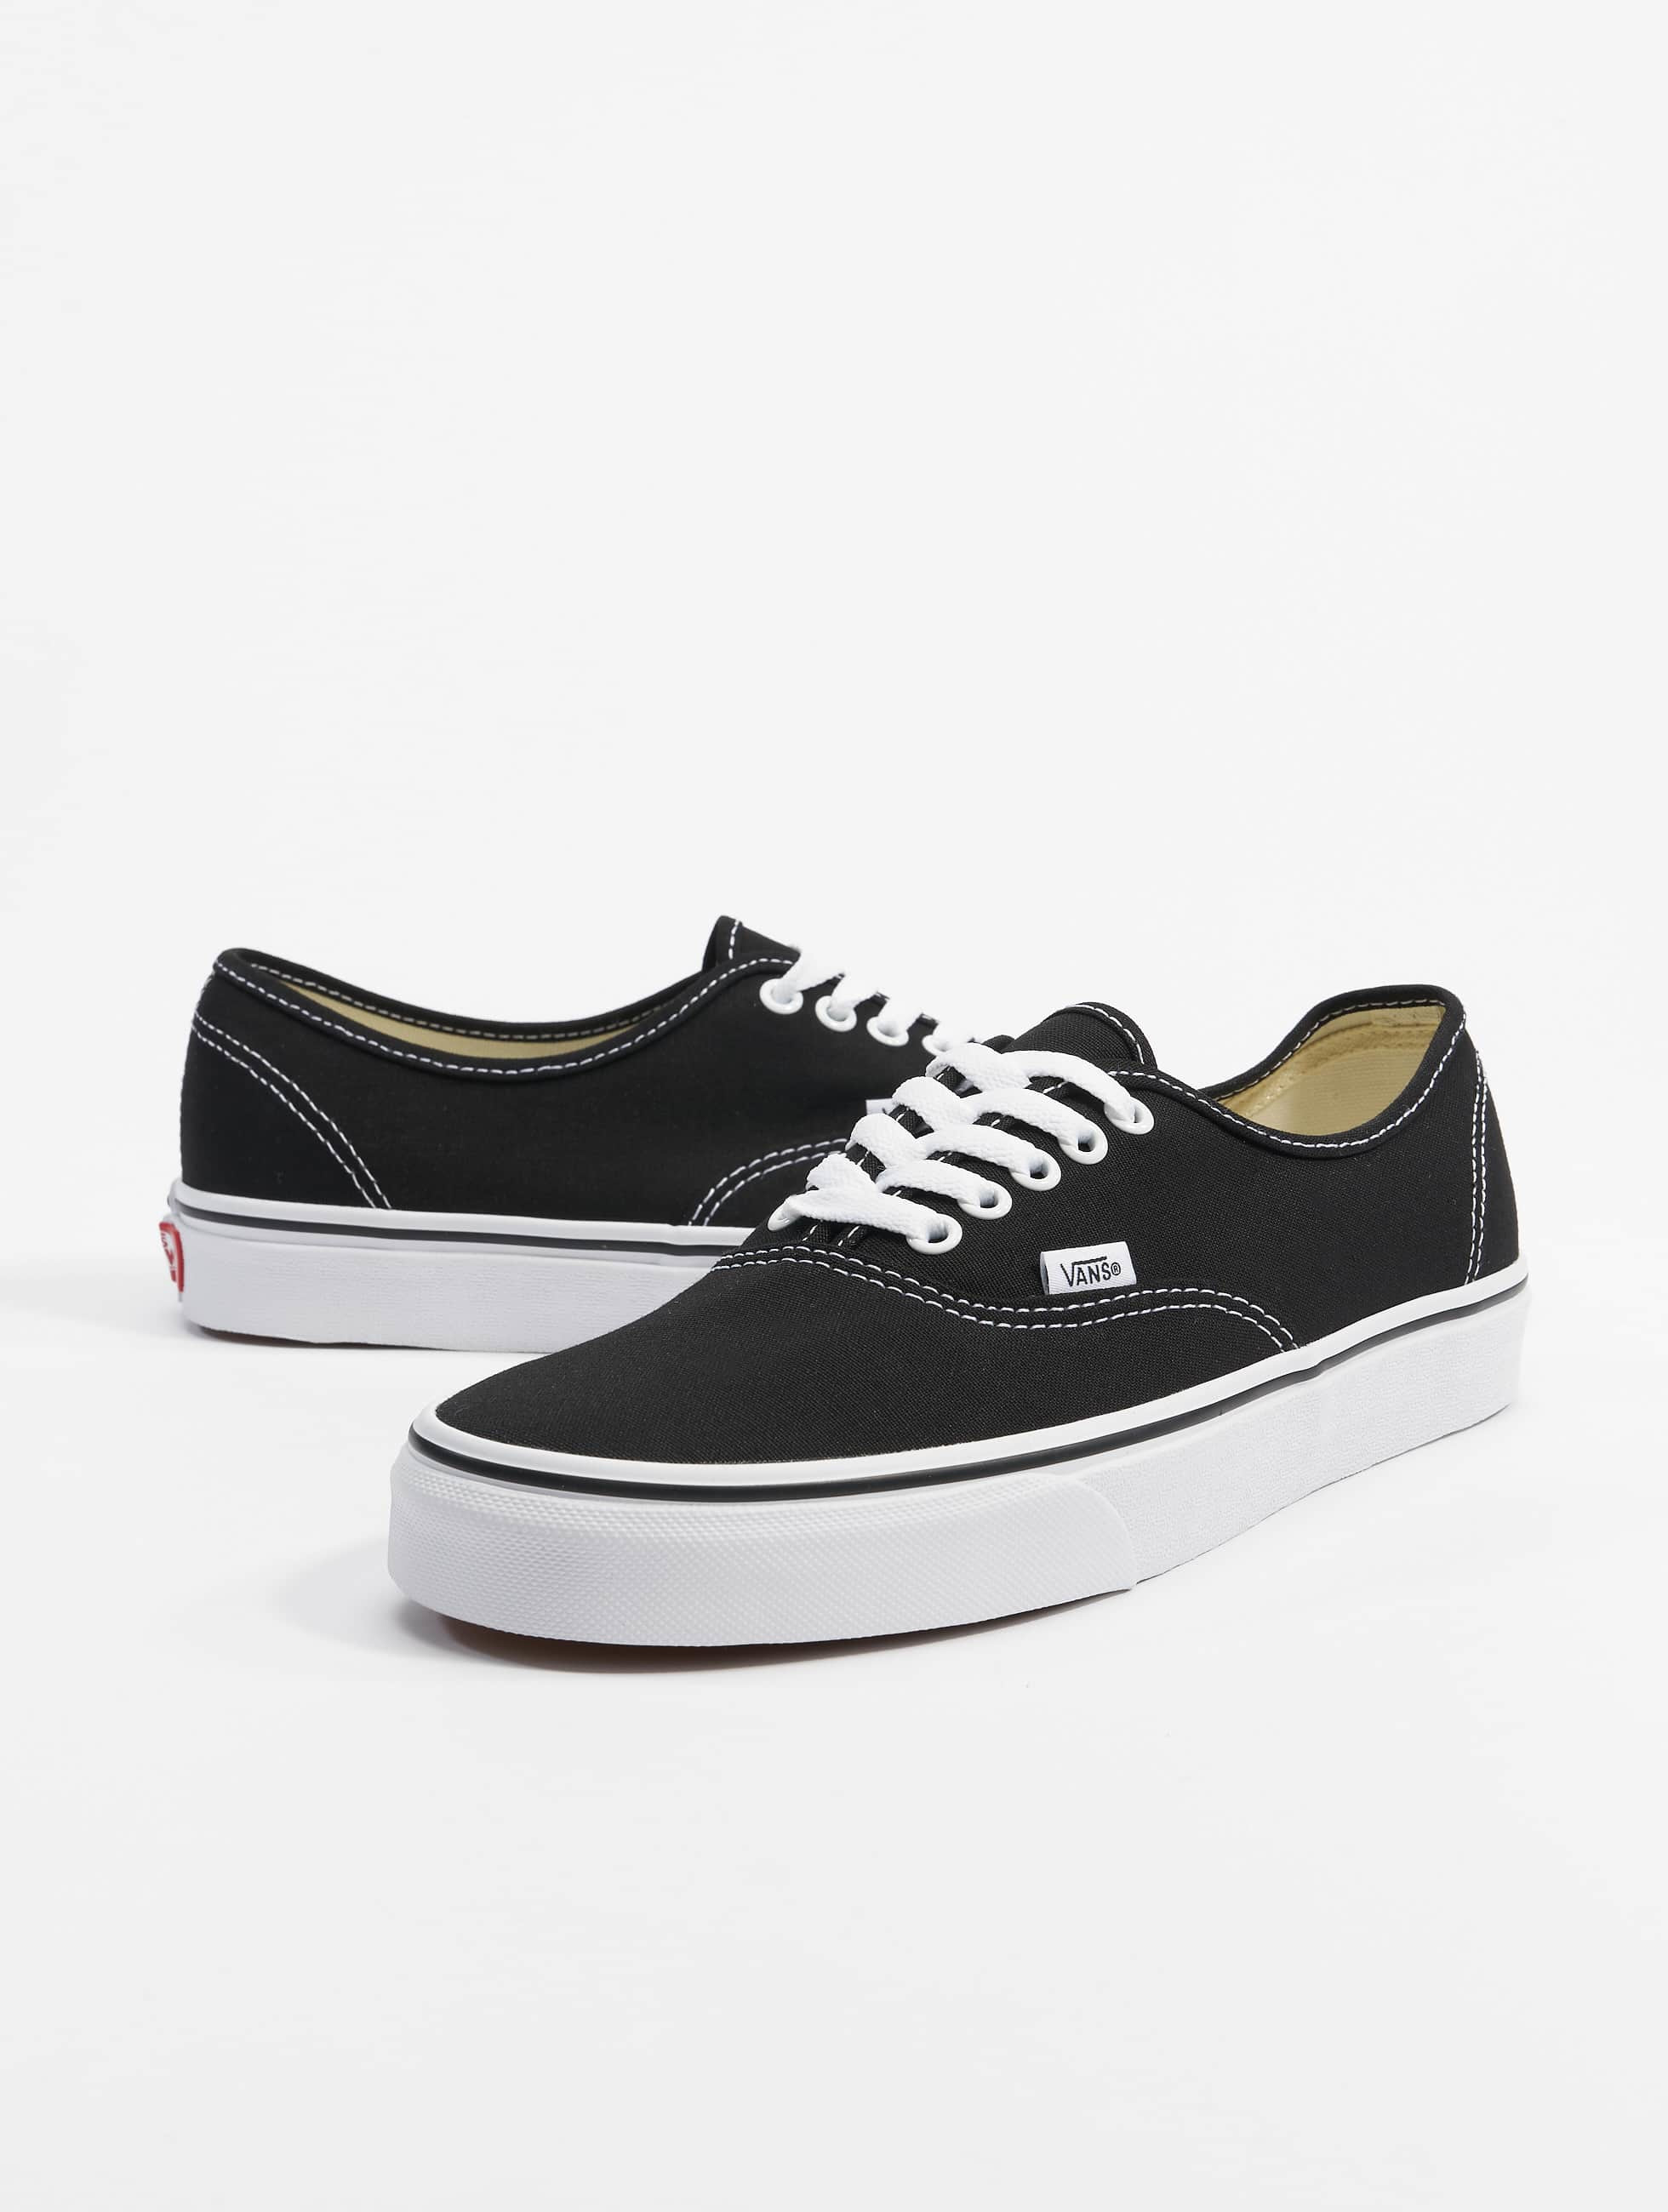 authentic vans schwarz